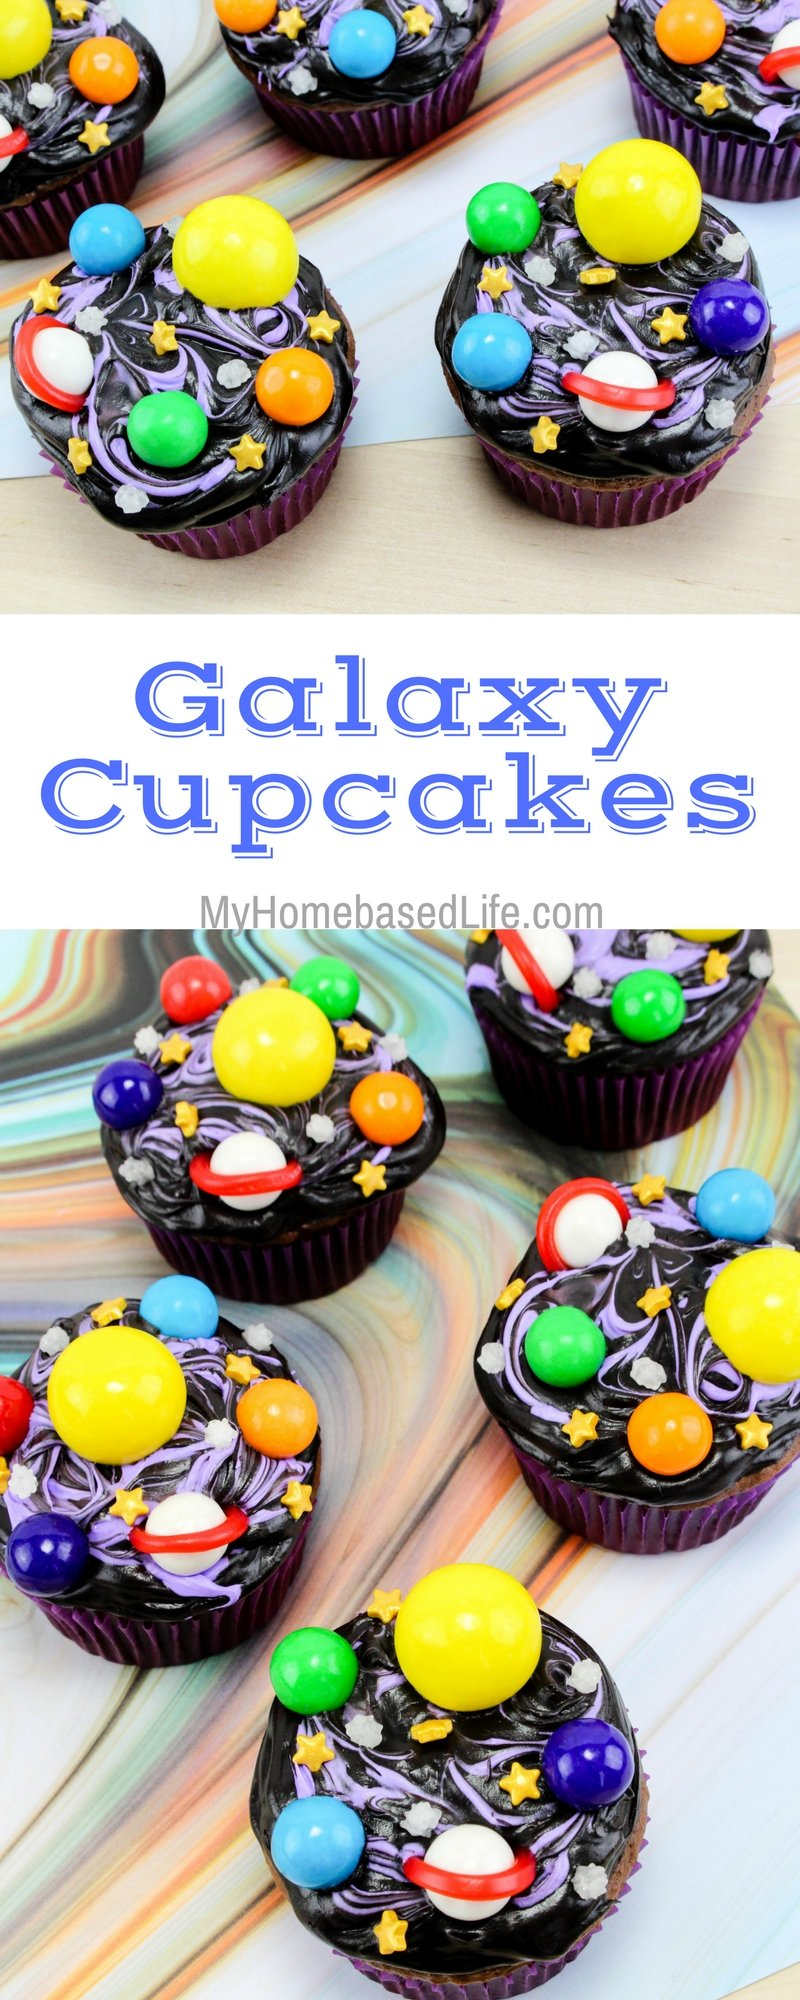 There is really no right or wrong way to decorate these galaxy cupcakes so let their creative minds run free. It's exciting to see what your kids create. #galaxy #cupcakes #recipe #fooddecor #spacethemed | Galaxy Unit Ideas | Homeschool Activities | Easy recipes for kids | Dessert Recipe | Cupcakes Recipe | Chocolate Cupcakes |